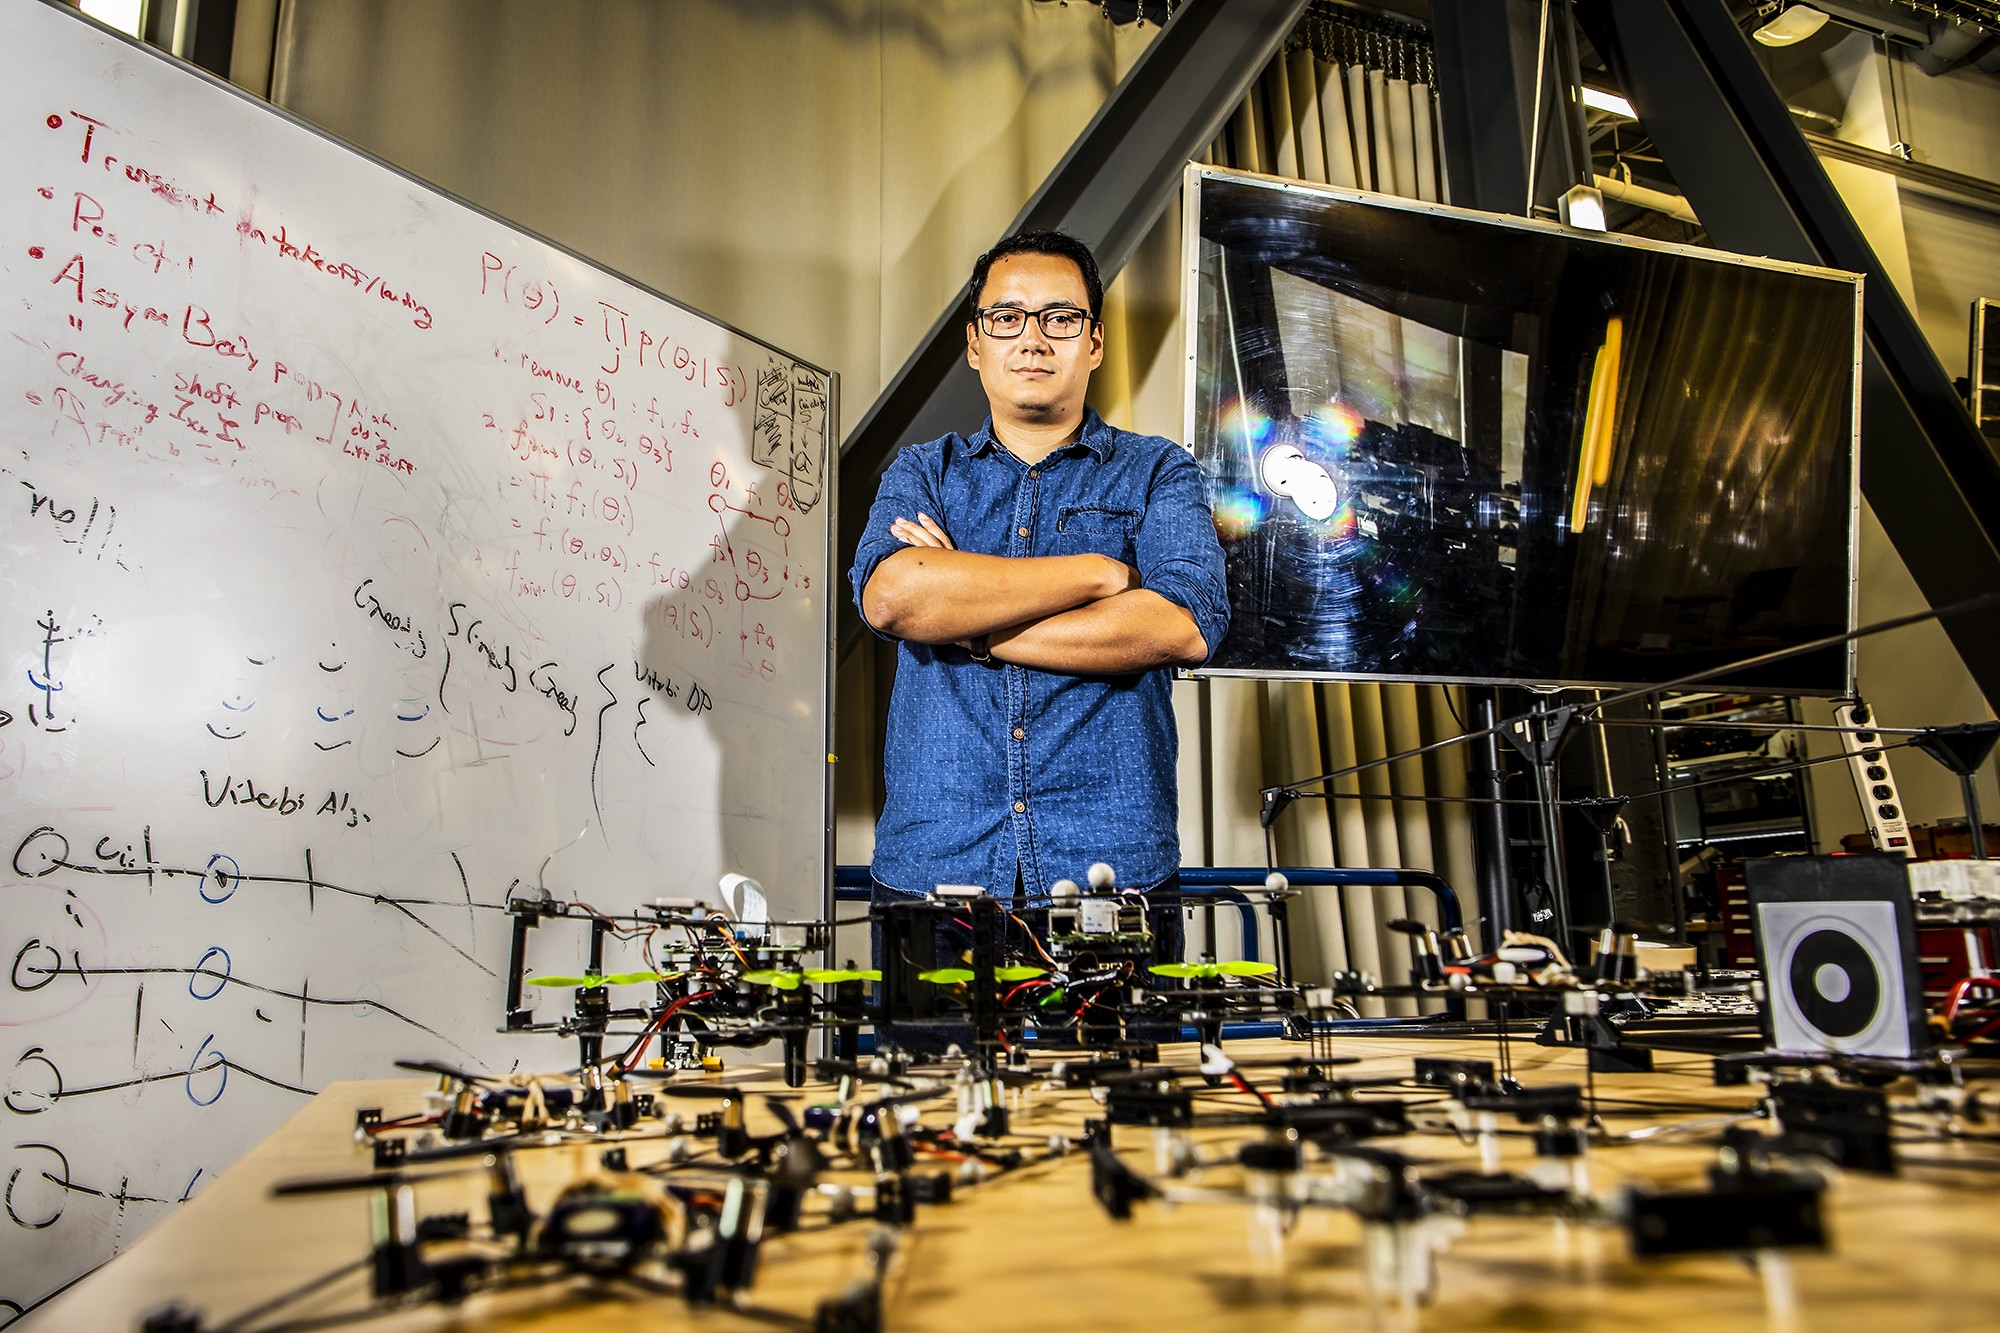 Postdoctoral researcher David Saldaña poses in front of a fleet of small flying robots.